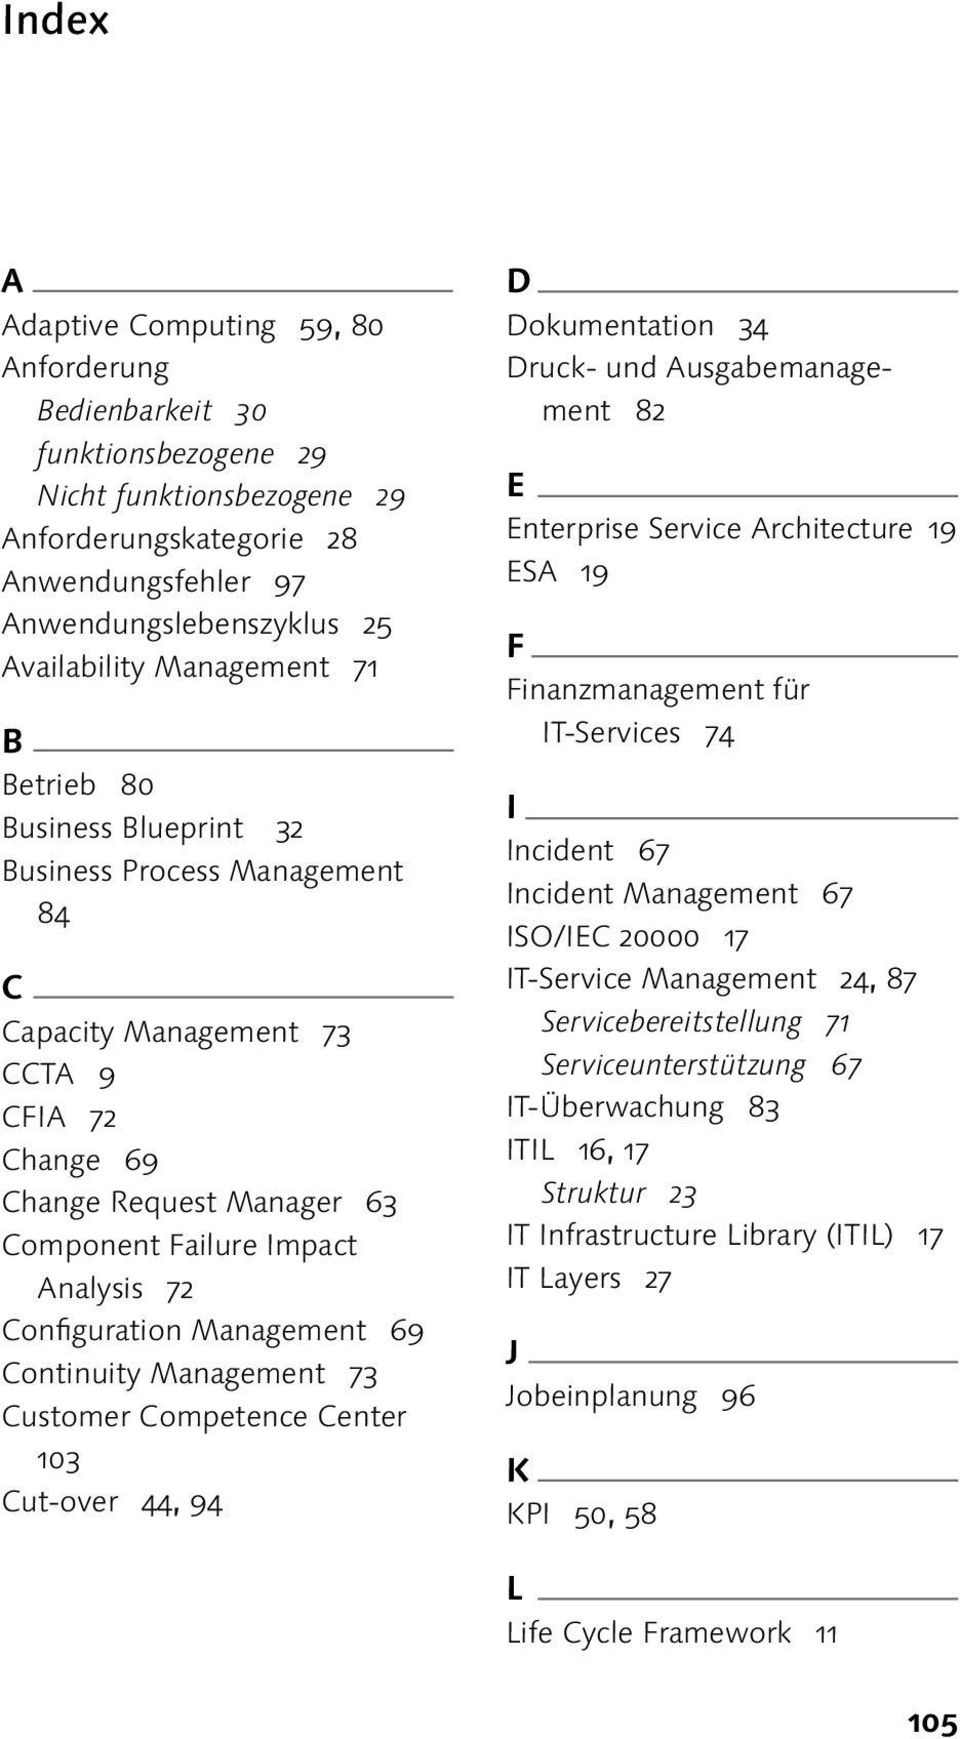 Competence Center 103 Cut-over 44, 94 D Dokumentation 34 Druck- und Ausgabemanagement 82 E Enterprise Service Architecture 19 ESA 19 F Finanzmanagement für IT-Services 74 I Incident 67 Incident 67